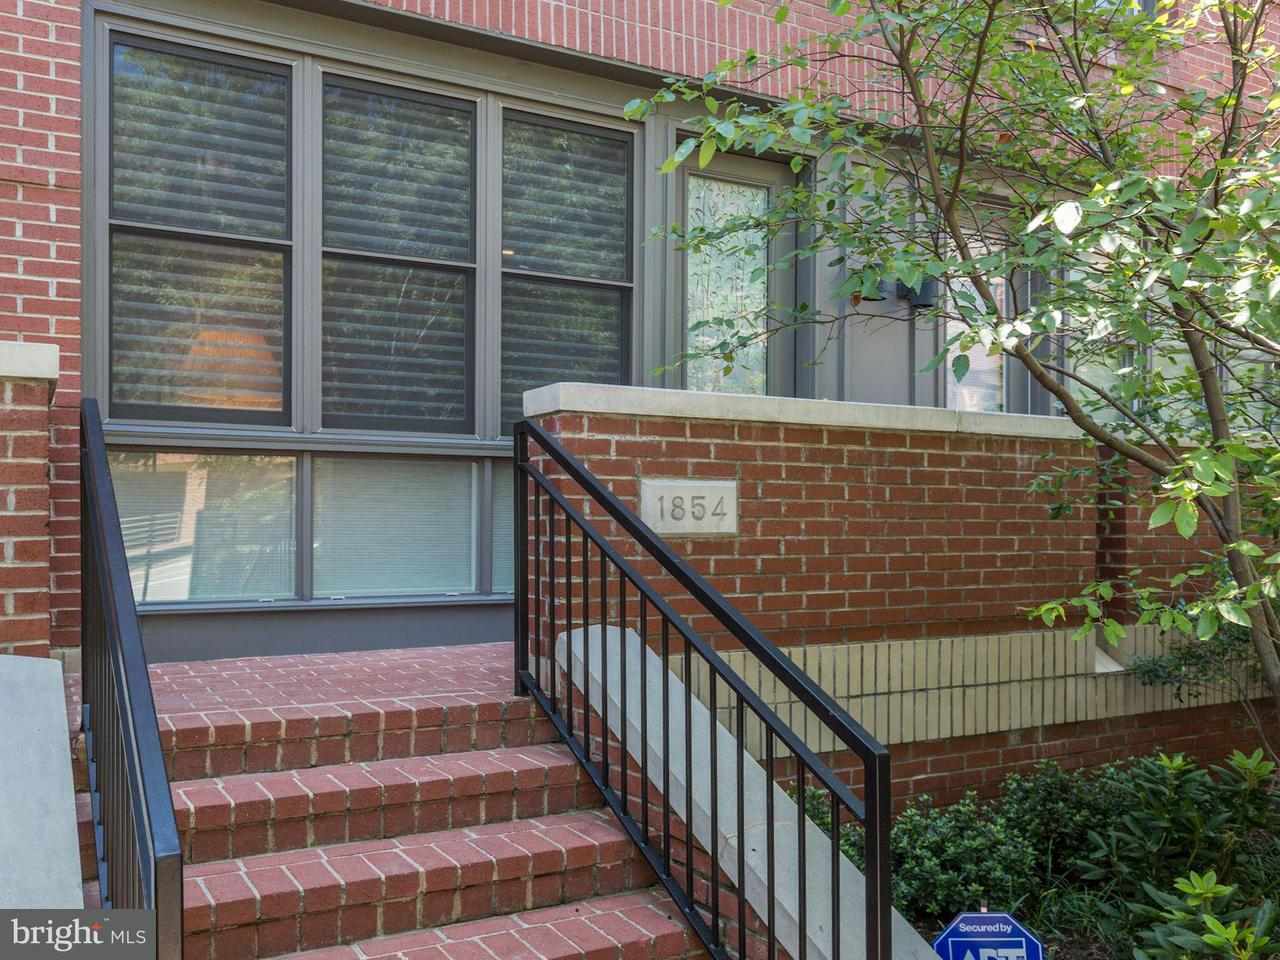 Townhouse for Sale at 1854 Clarendon Blvd 1854 Clarendon Blvd Arlington, Virginia 22201 United States